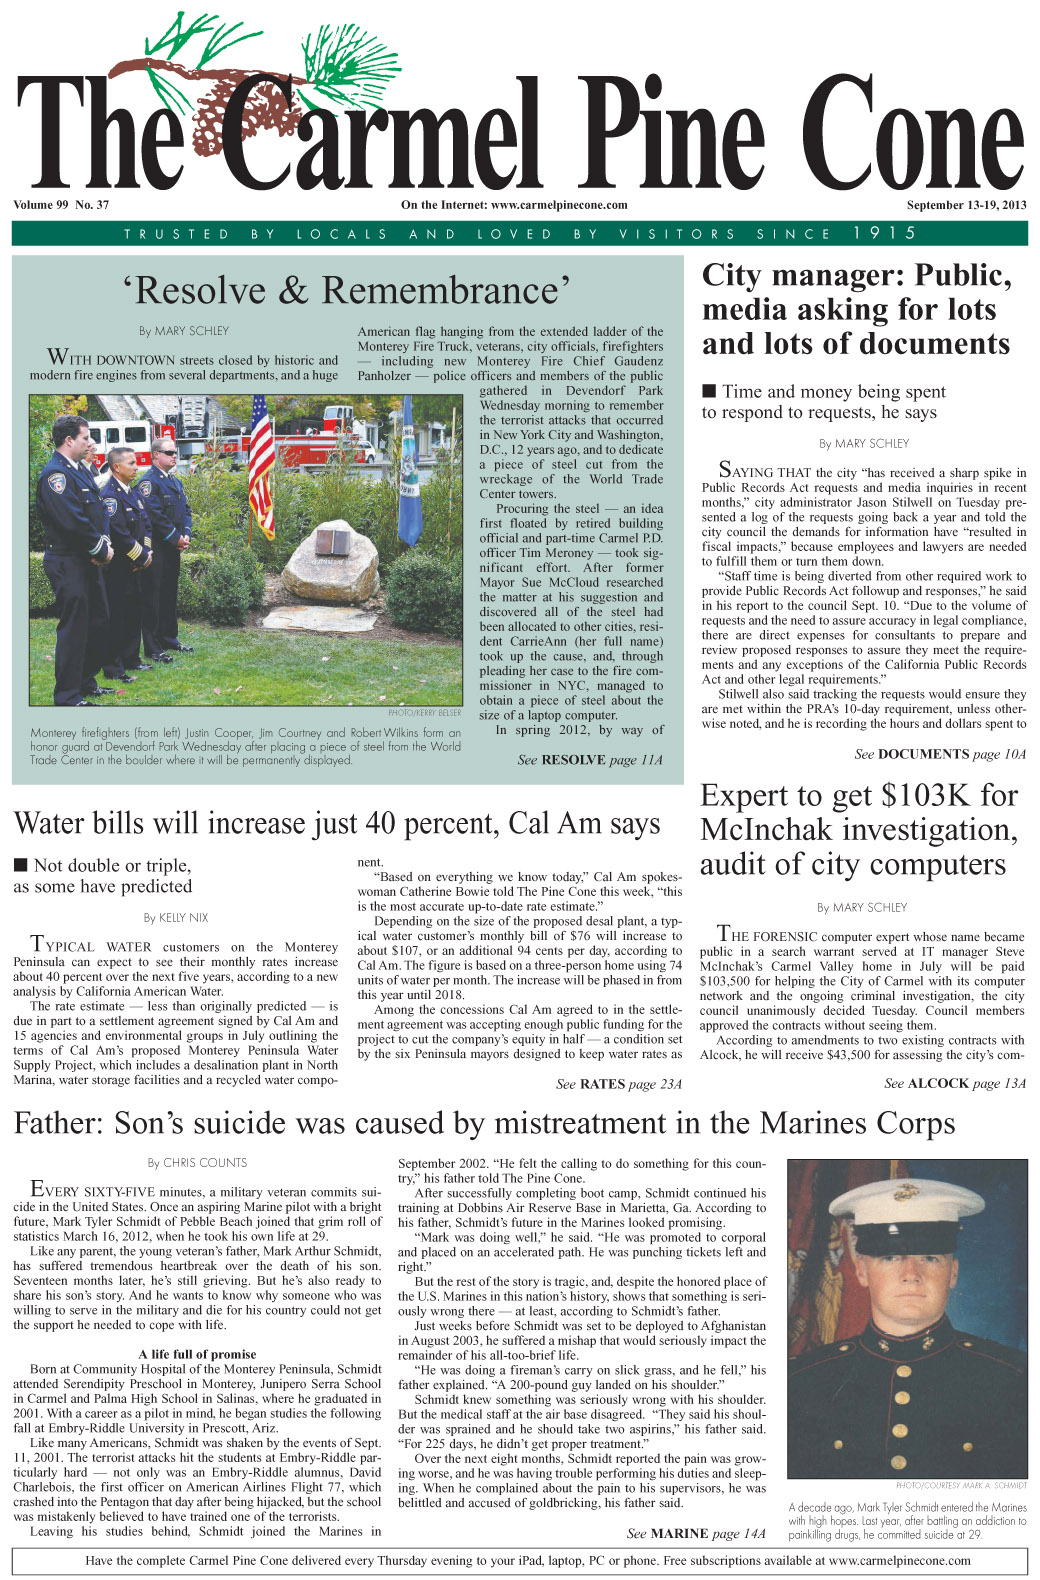 The September 13, 2013, front page of The Carmel                 Pine Cone